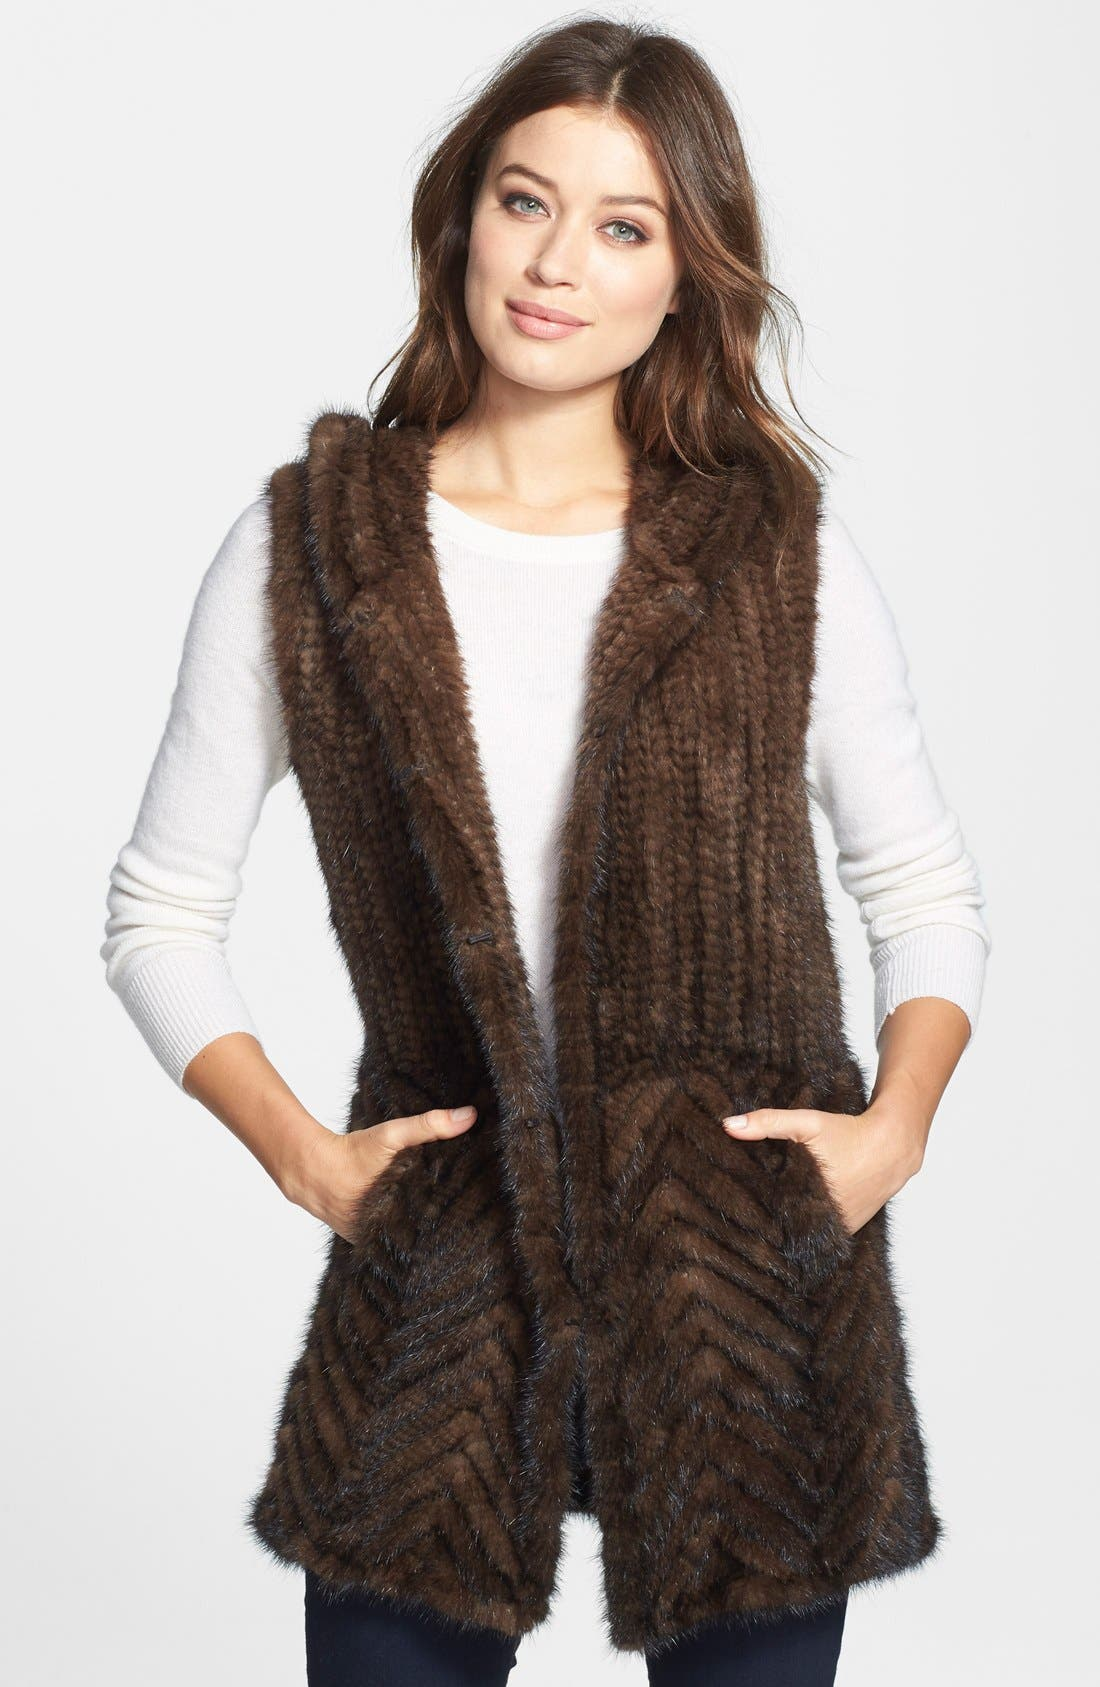 Knitted Genuine Mink Hooded Vest,                             Main thumbnail 1, color,                             200